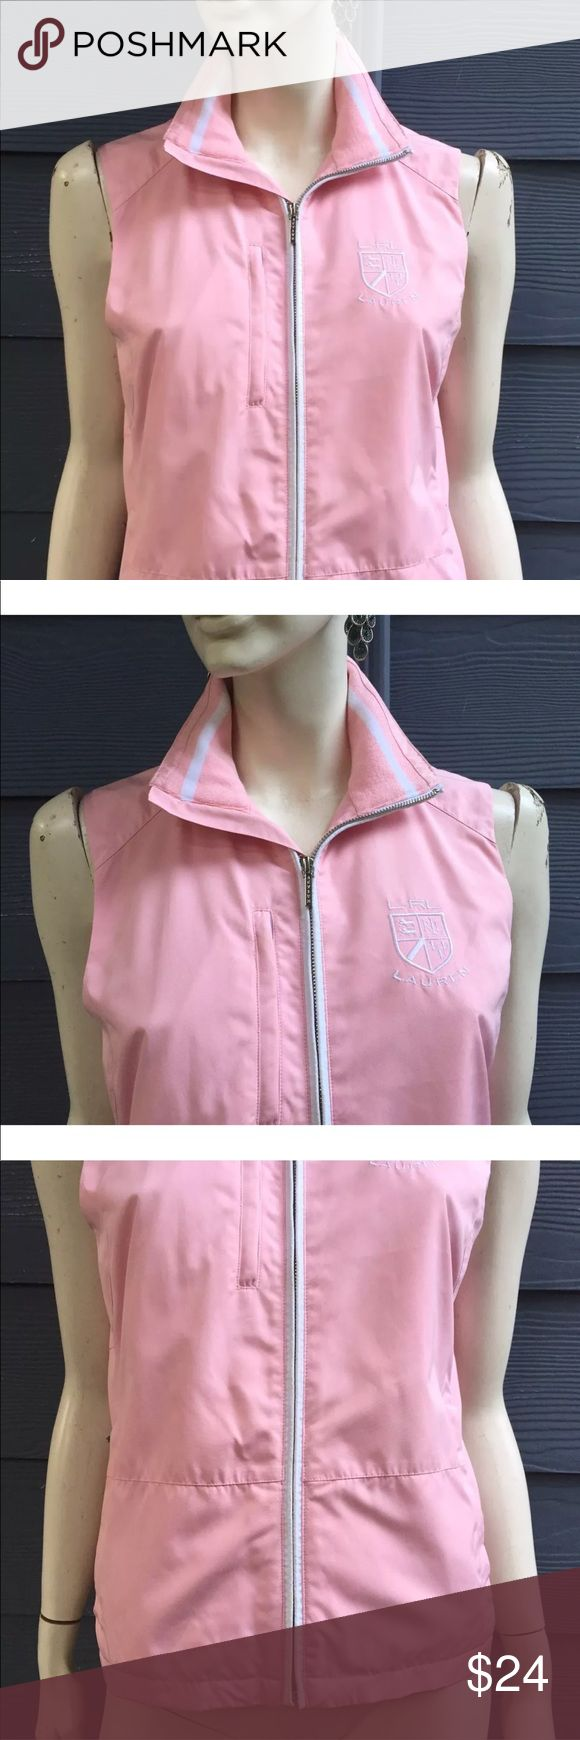 """Lauren Ralph Lauren Women's Vest Pink Zip Sz M Lauren Ralph Lauren Women's Vest Pink White Mesh Lined 3 Zipped Pockets Zip Size M  Measurements laying flat approximate: Bust 19 1/2"""", waist 19"""", hips 19 1/2"""", length 23"""".  THIS GORGEOUS VEST HAS BEEN GENTLY WORN AND OVERALL IN GREAT CONDITION! IT ONLY SHOWS REGULAR SIGNS OF WEAR.  NOTE:  PLEASE REVIEW MEASUREMENTS CAREFULLY BEFORE PURCHASING THIS ITEM SINCE SIZES SOME TIMES ARE DIFFERENT FROM BRAND TO BRAND. Lauren Ralph Lauren Jackets & Coats…"""